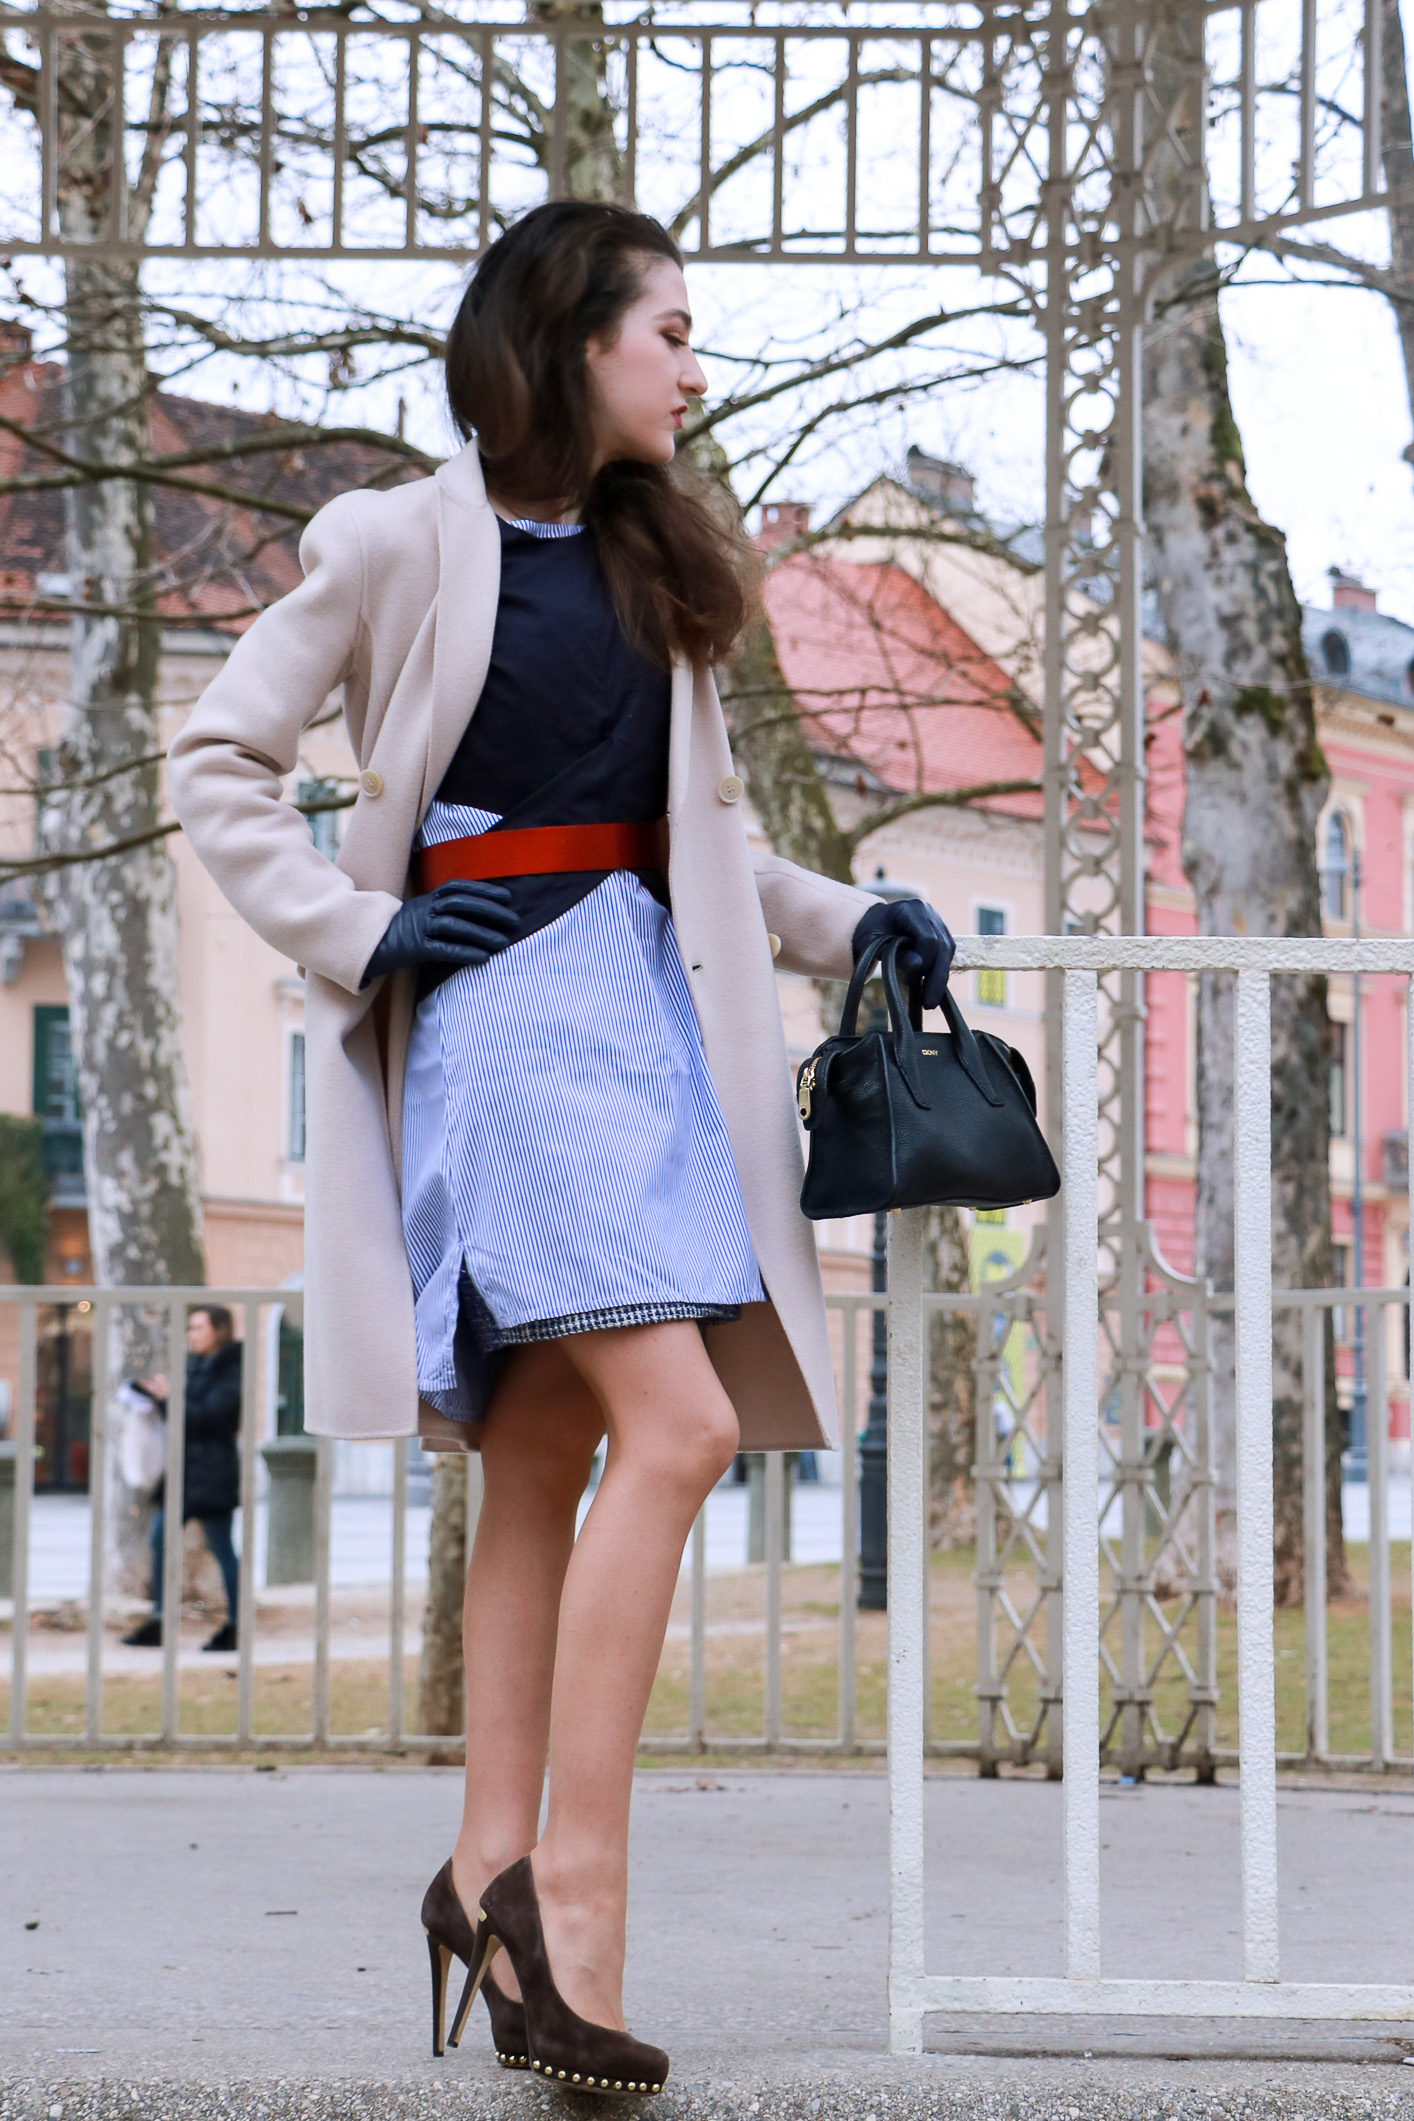 Fashion Blogger Veronika Lipar of Brunette from Wall Street sharing how to wear your boyfriend's shirt